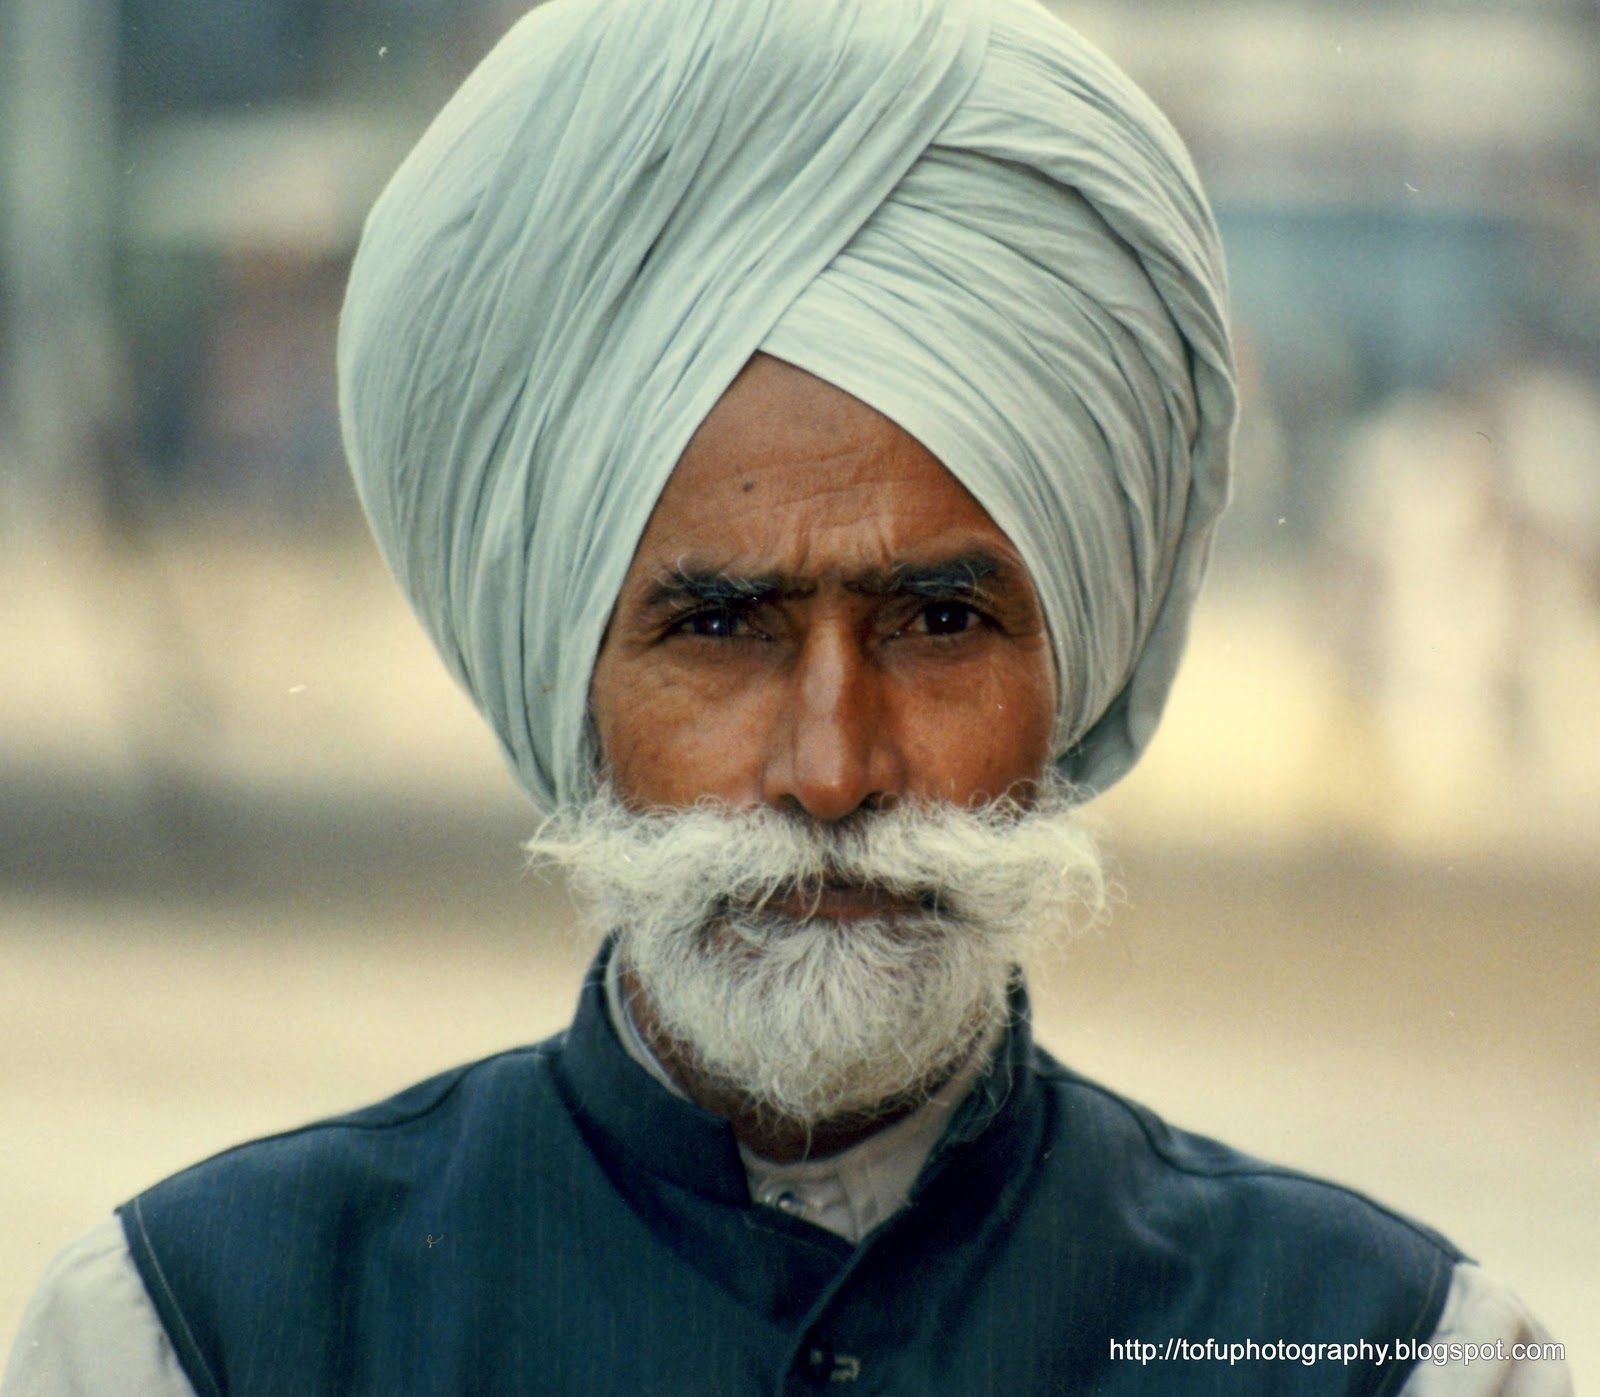 Turbans are worn by men in many communities in India ...